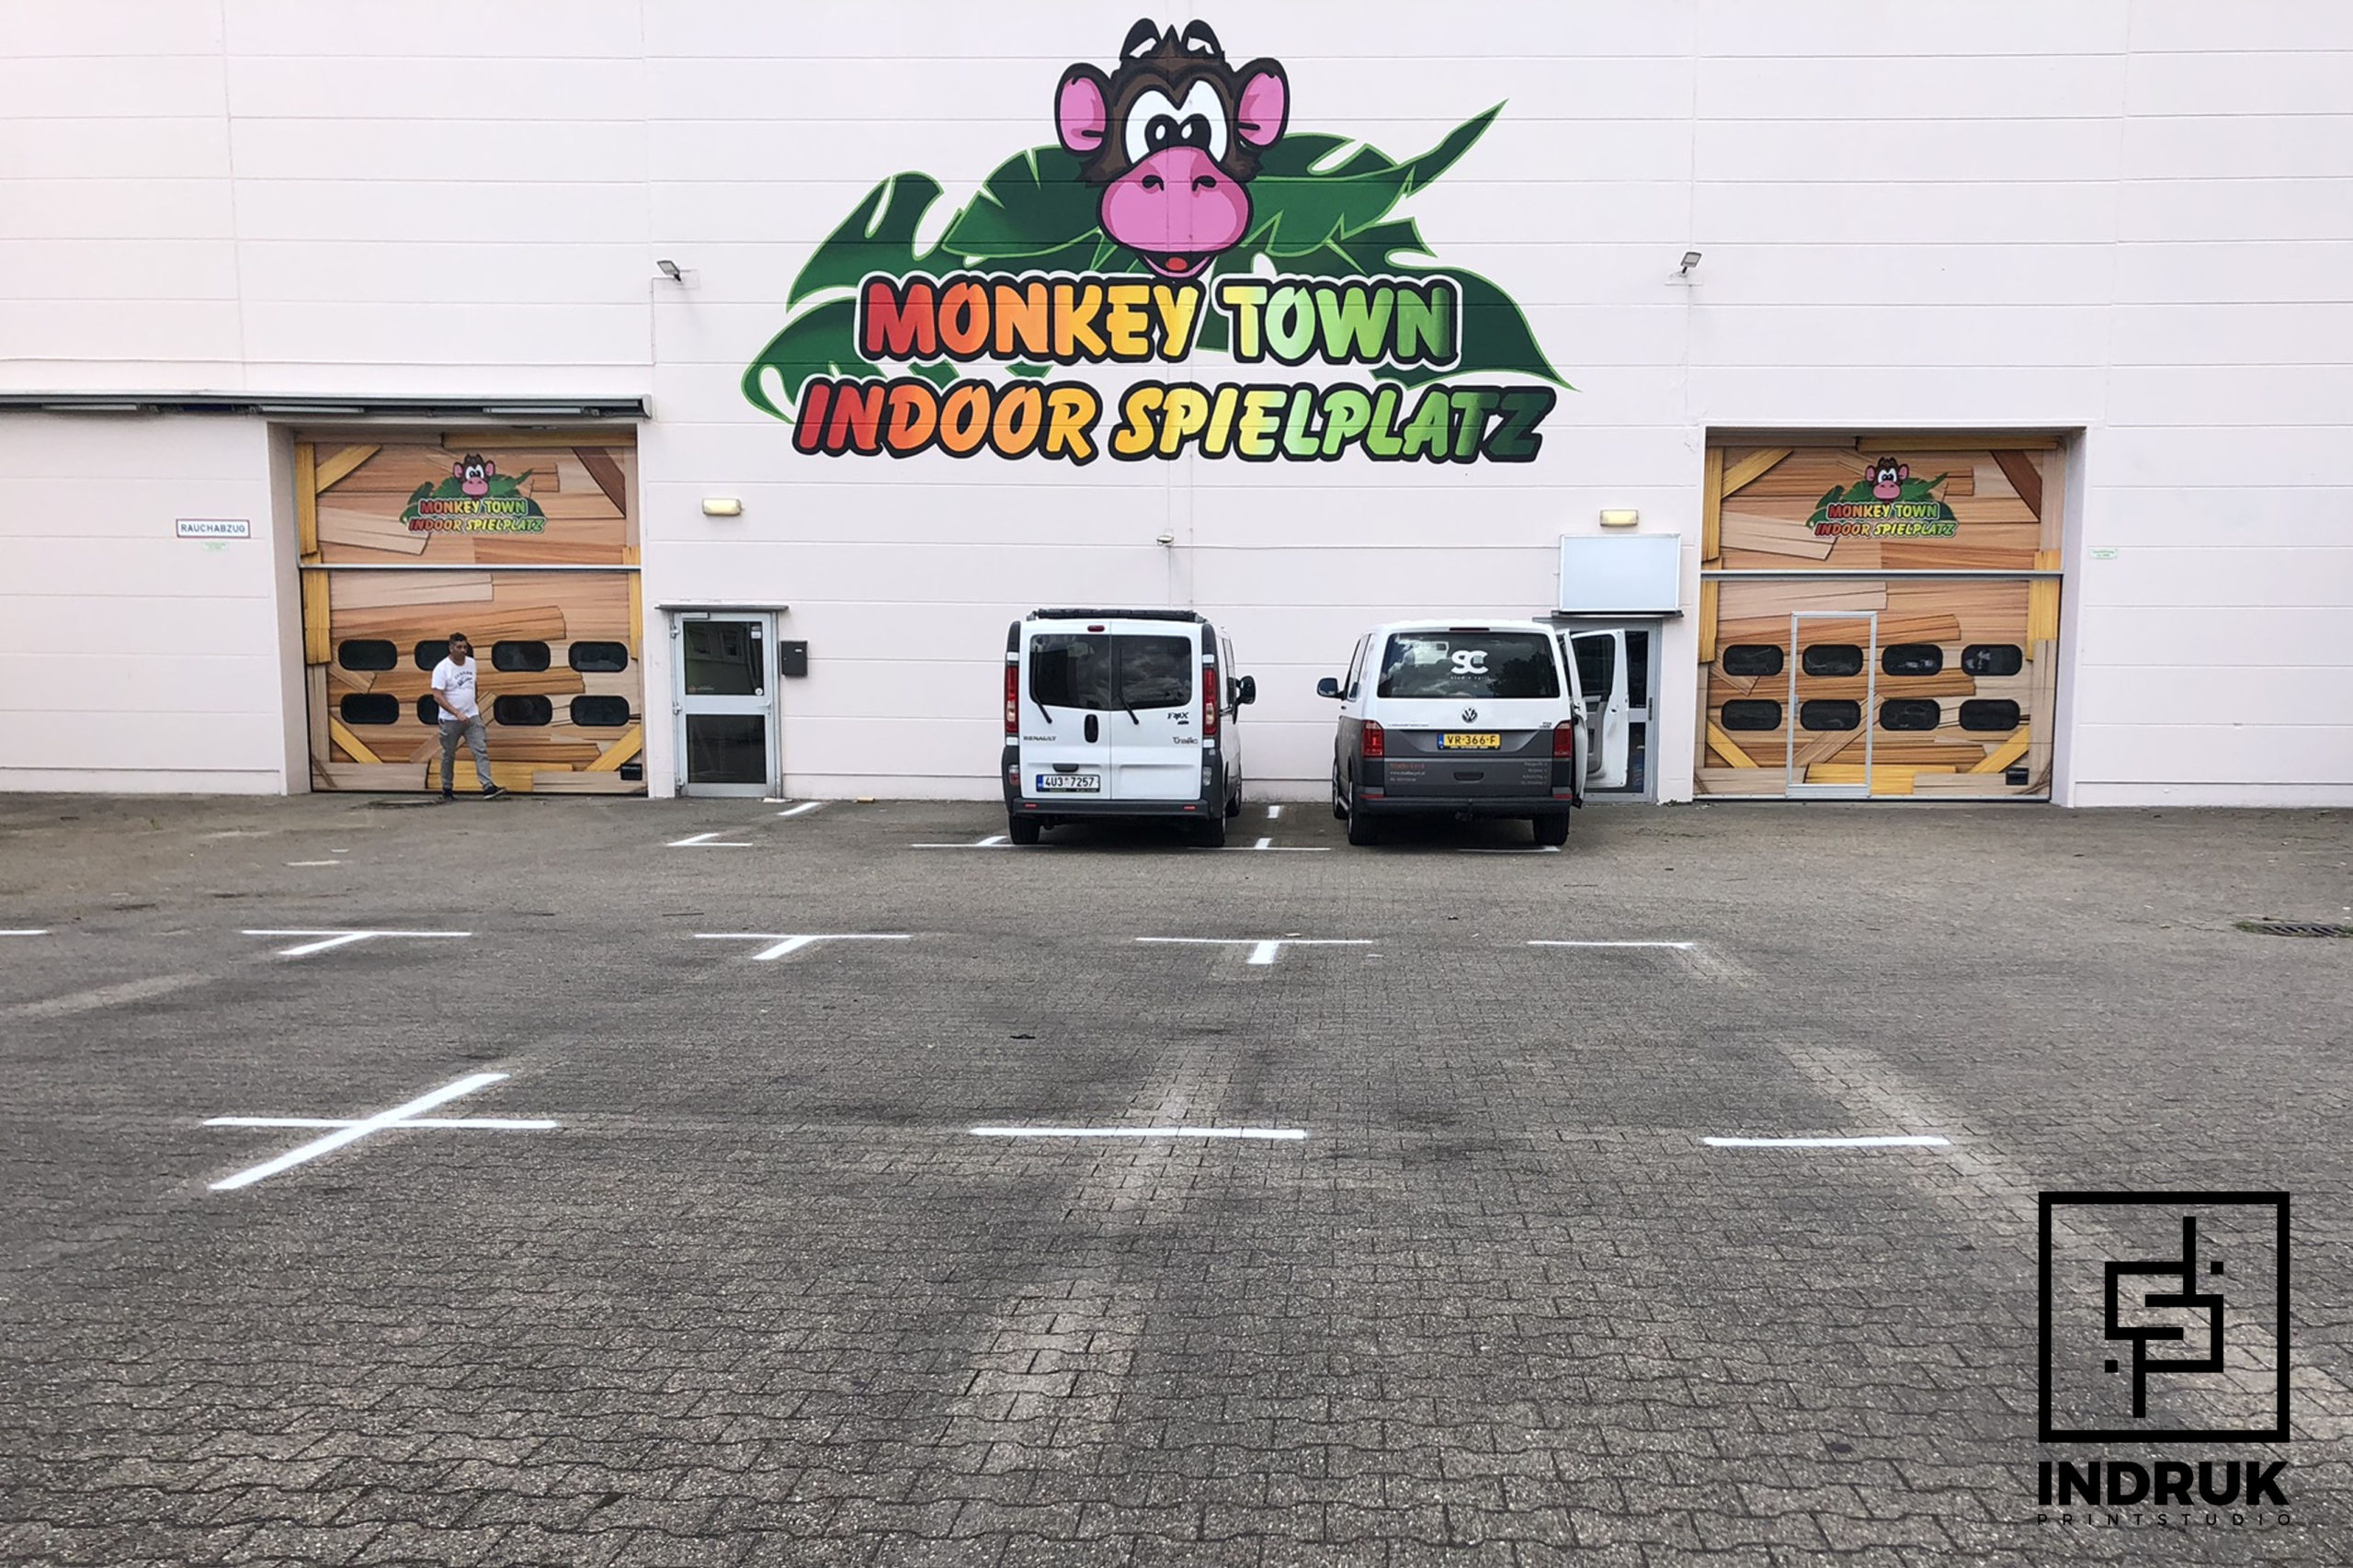 Monkeytown